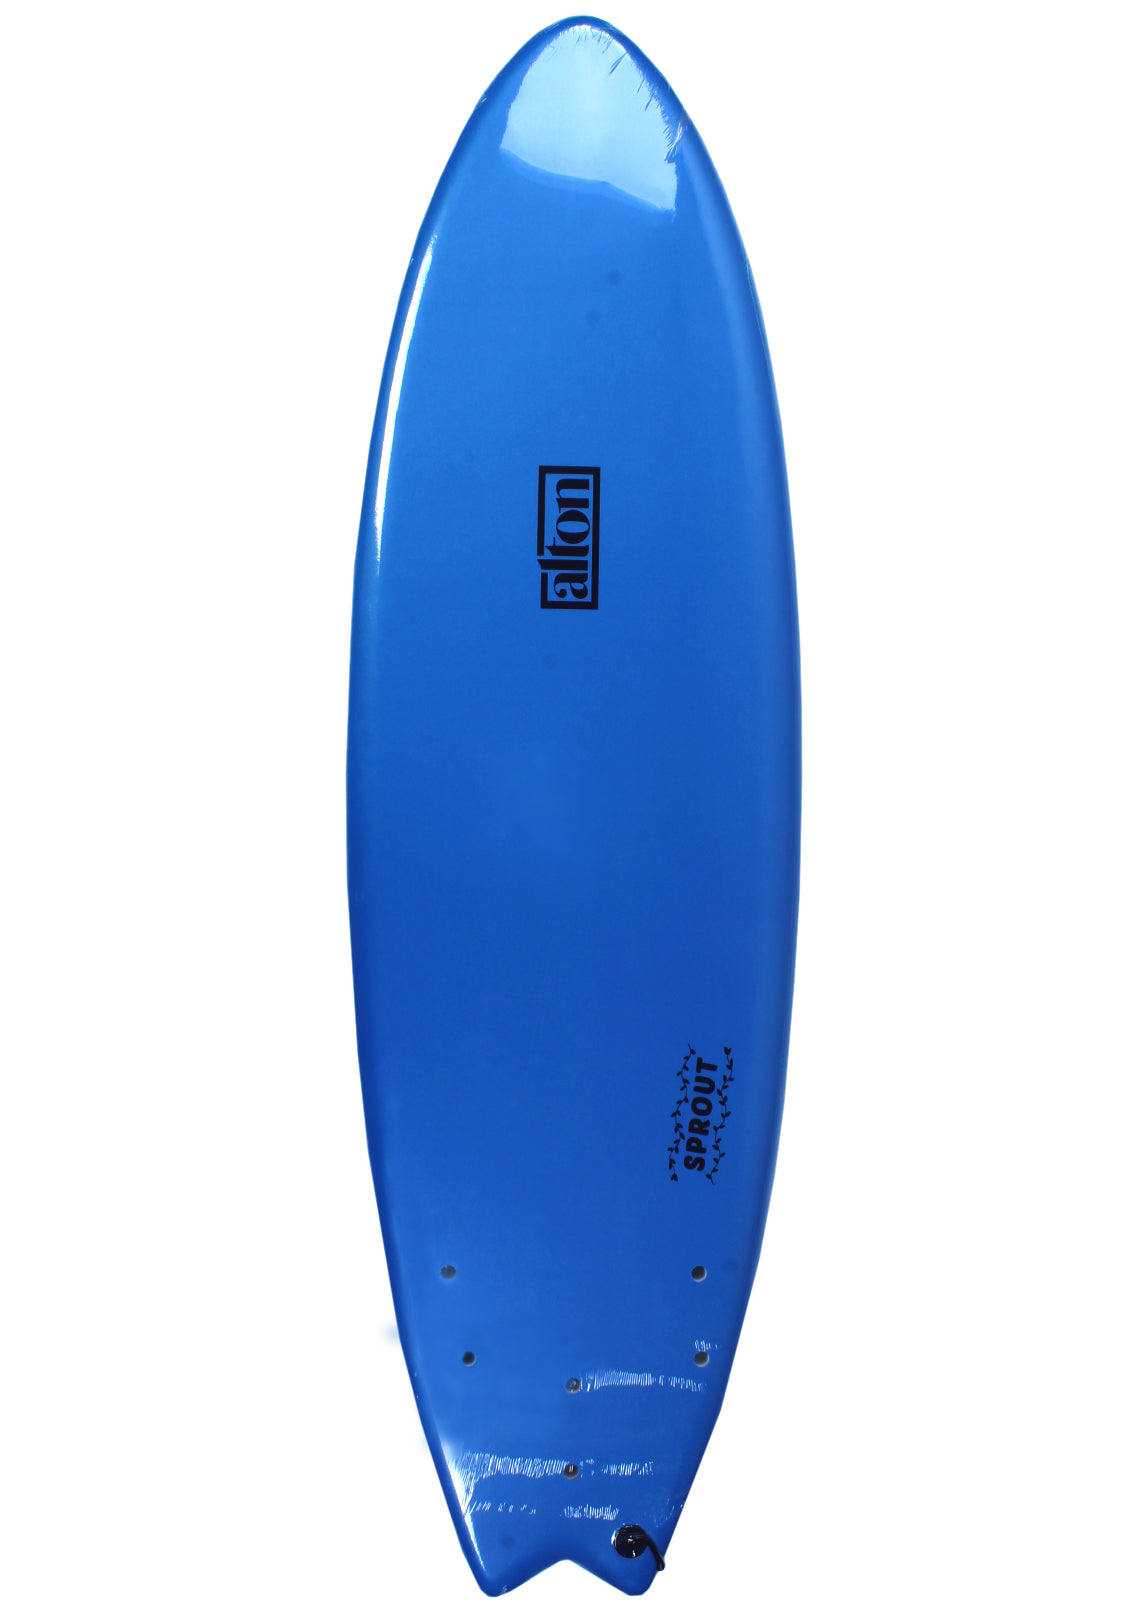 Alton Sprout Softboard 5'10